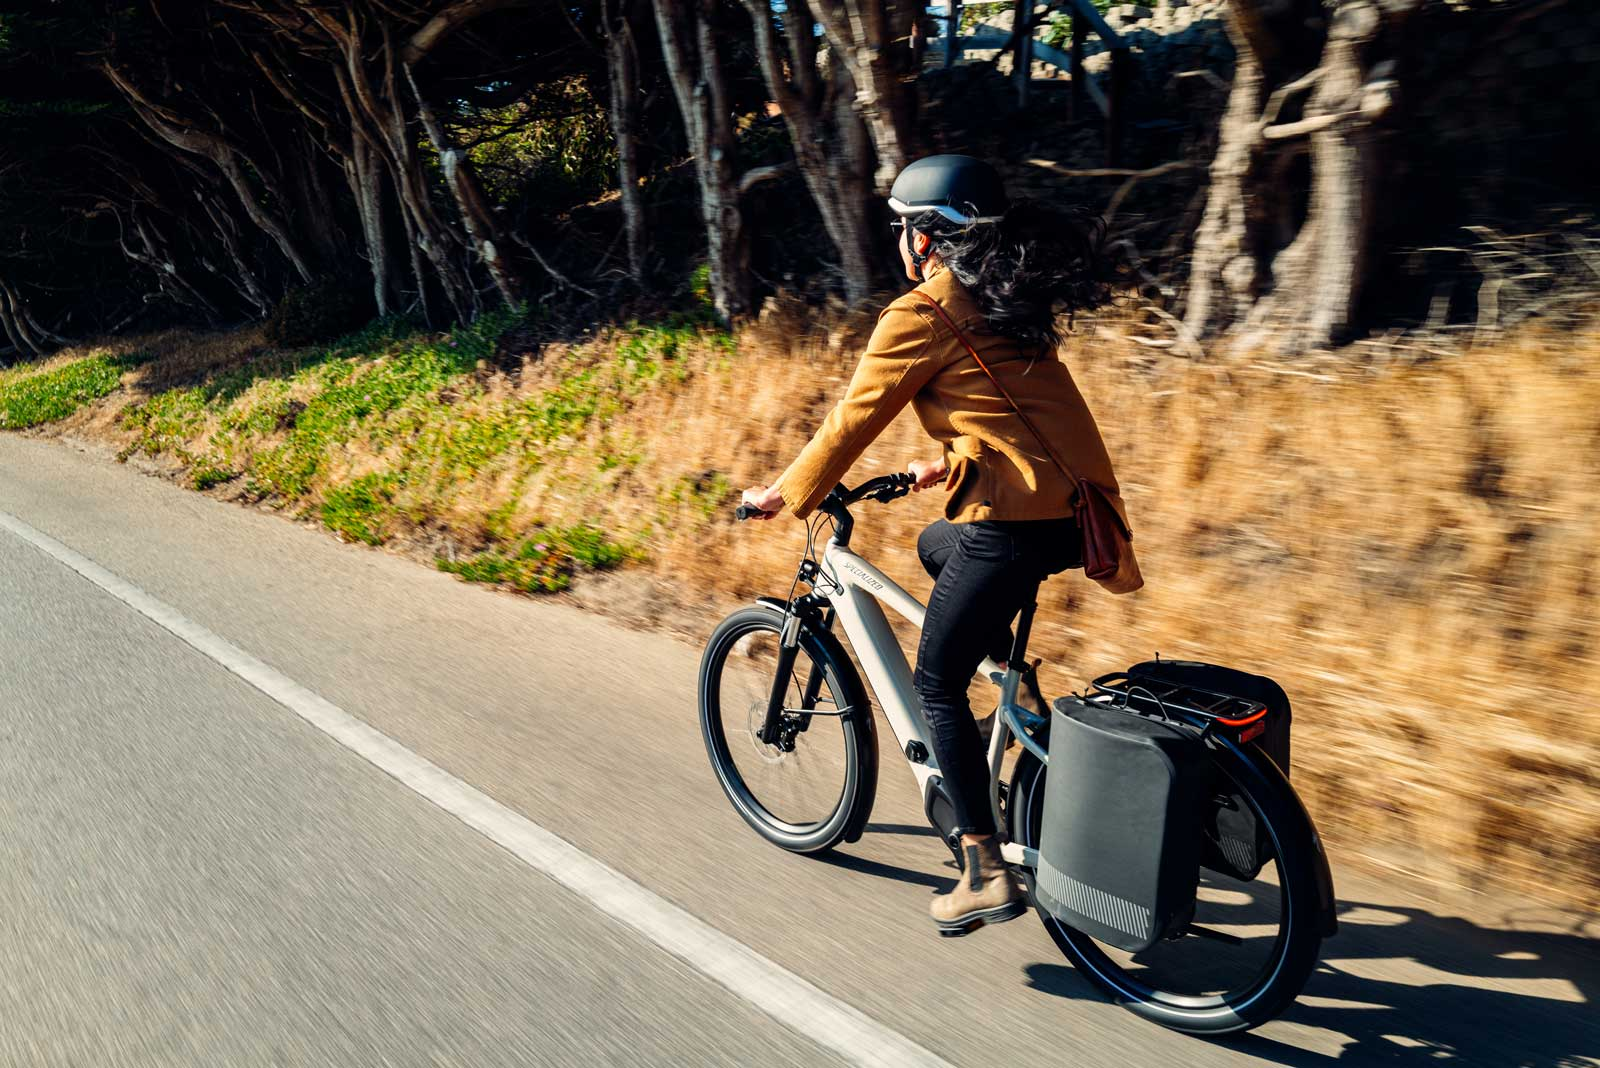 specialized tailwind pannier bags